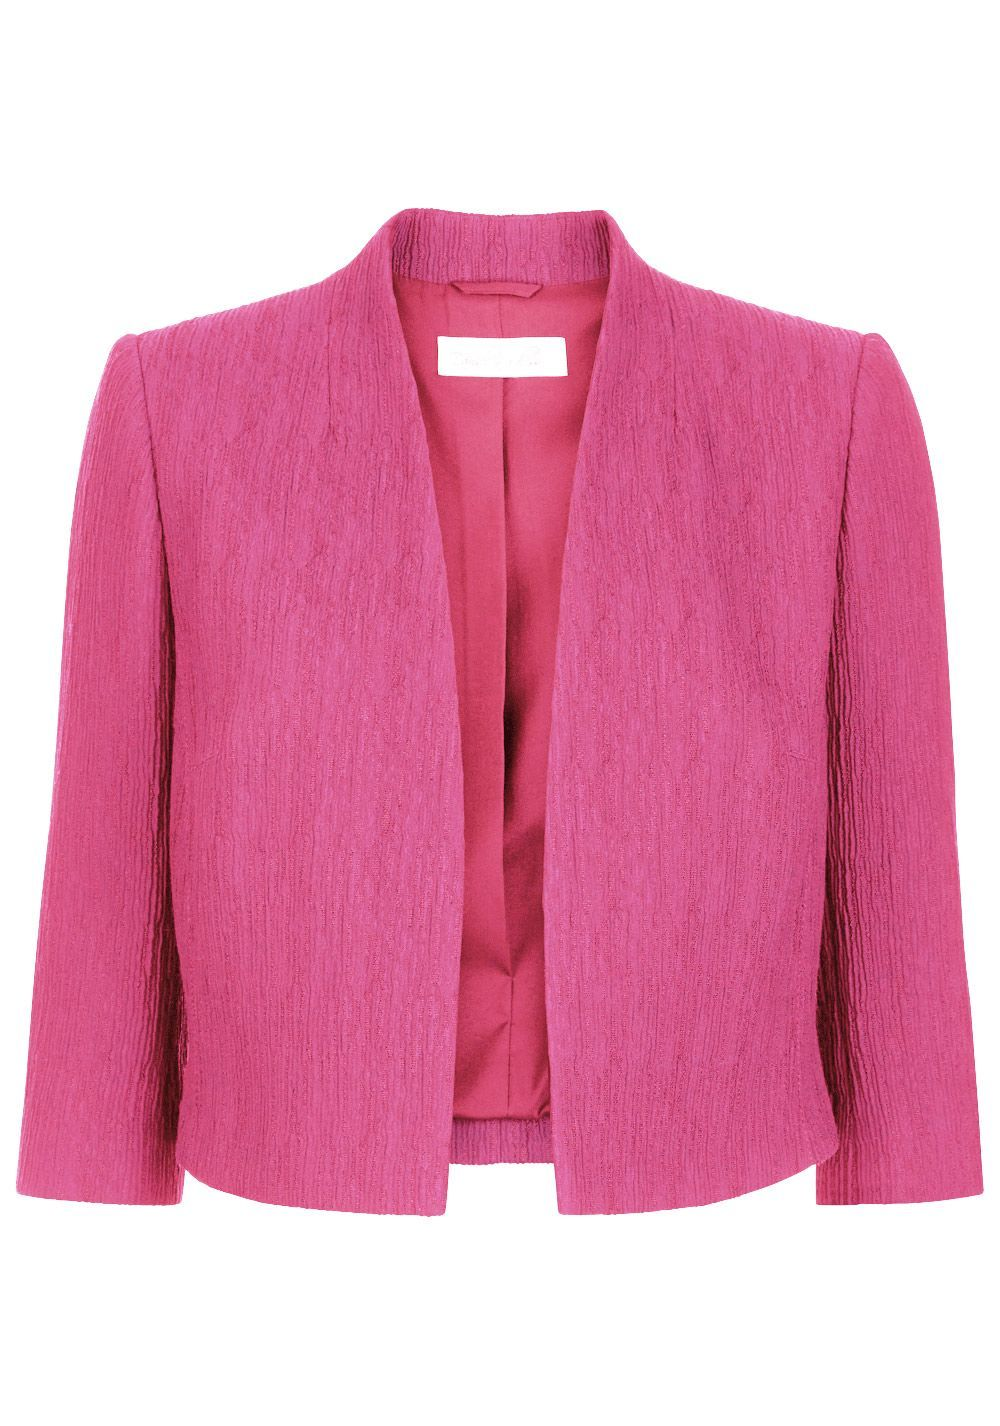 Sofia Jacket, Pink - pattern: plain; collar: round collar/collarless; style: boxy; predominant colour: hot pink; length: standard; fit: straight cut (boxy); fibres: cotton - mix; occasions: occasion; sleeve length: 3/4 length; sleeve style: standard; collar break: low/open; pattern type: fabric; texture group: woven light midweight; season: s/s 2016; wardrobe: event